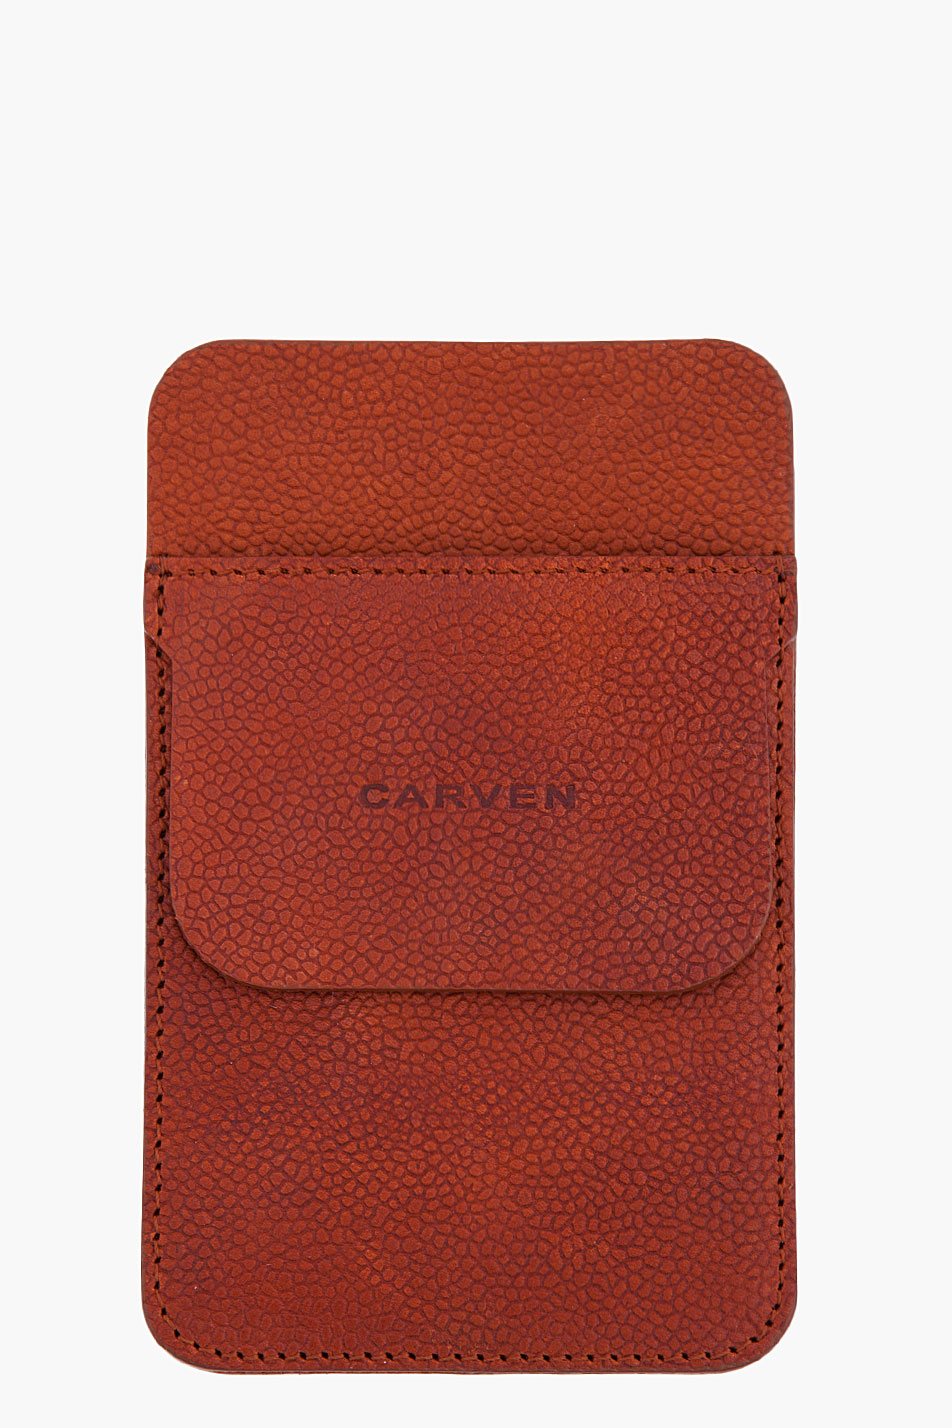 Carven leather pocket protector in brown for men lyst